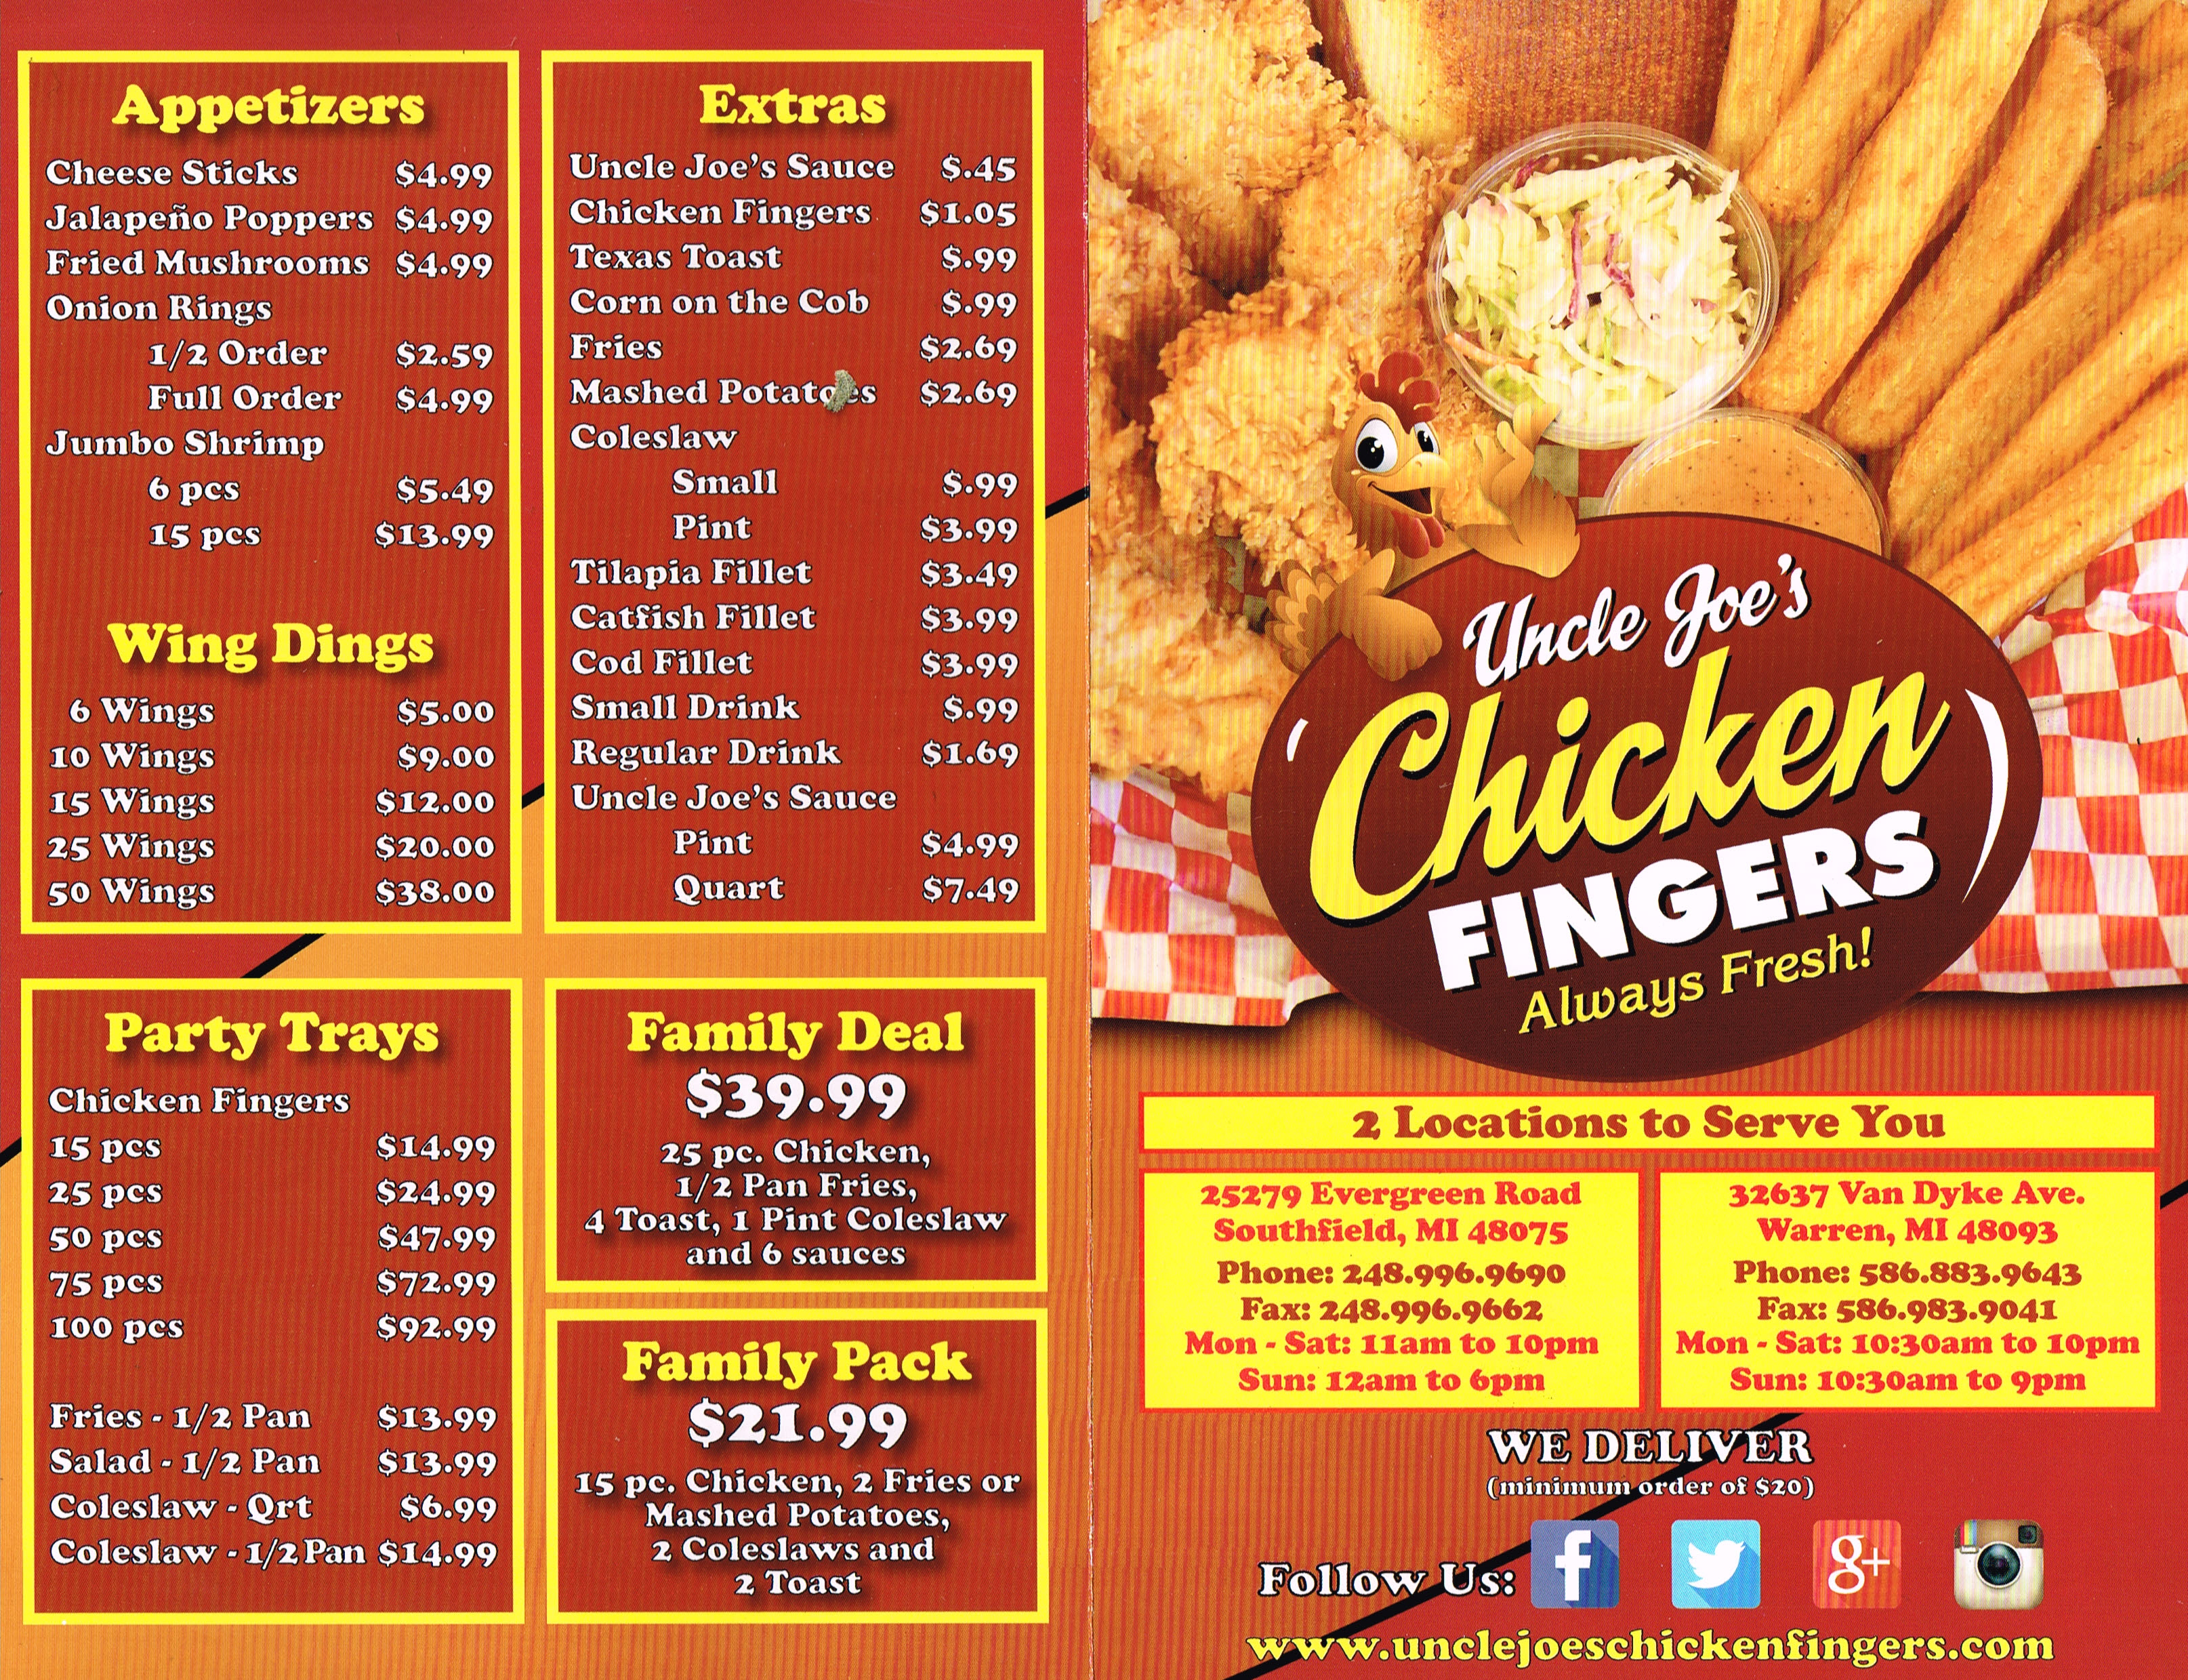 Warren Michigan Chicken Fingers (586)883 9643 | Uncle Joe's